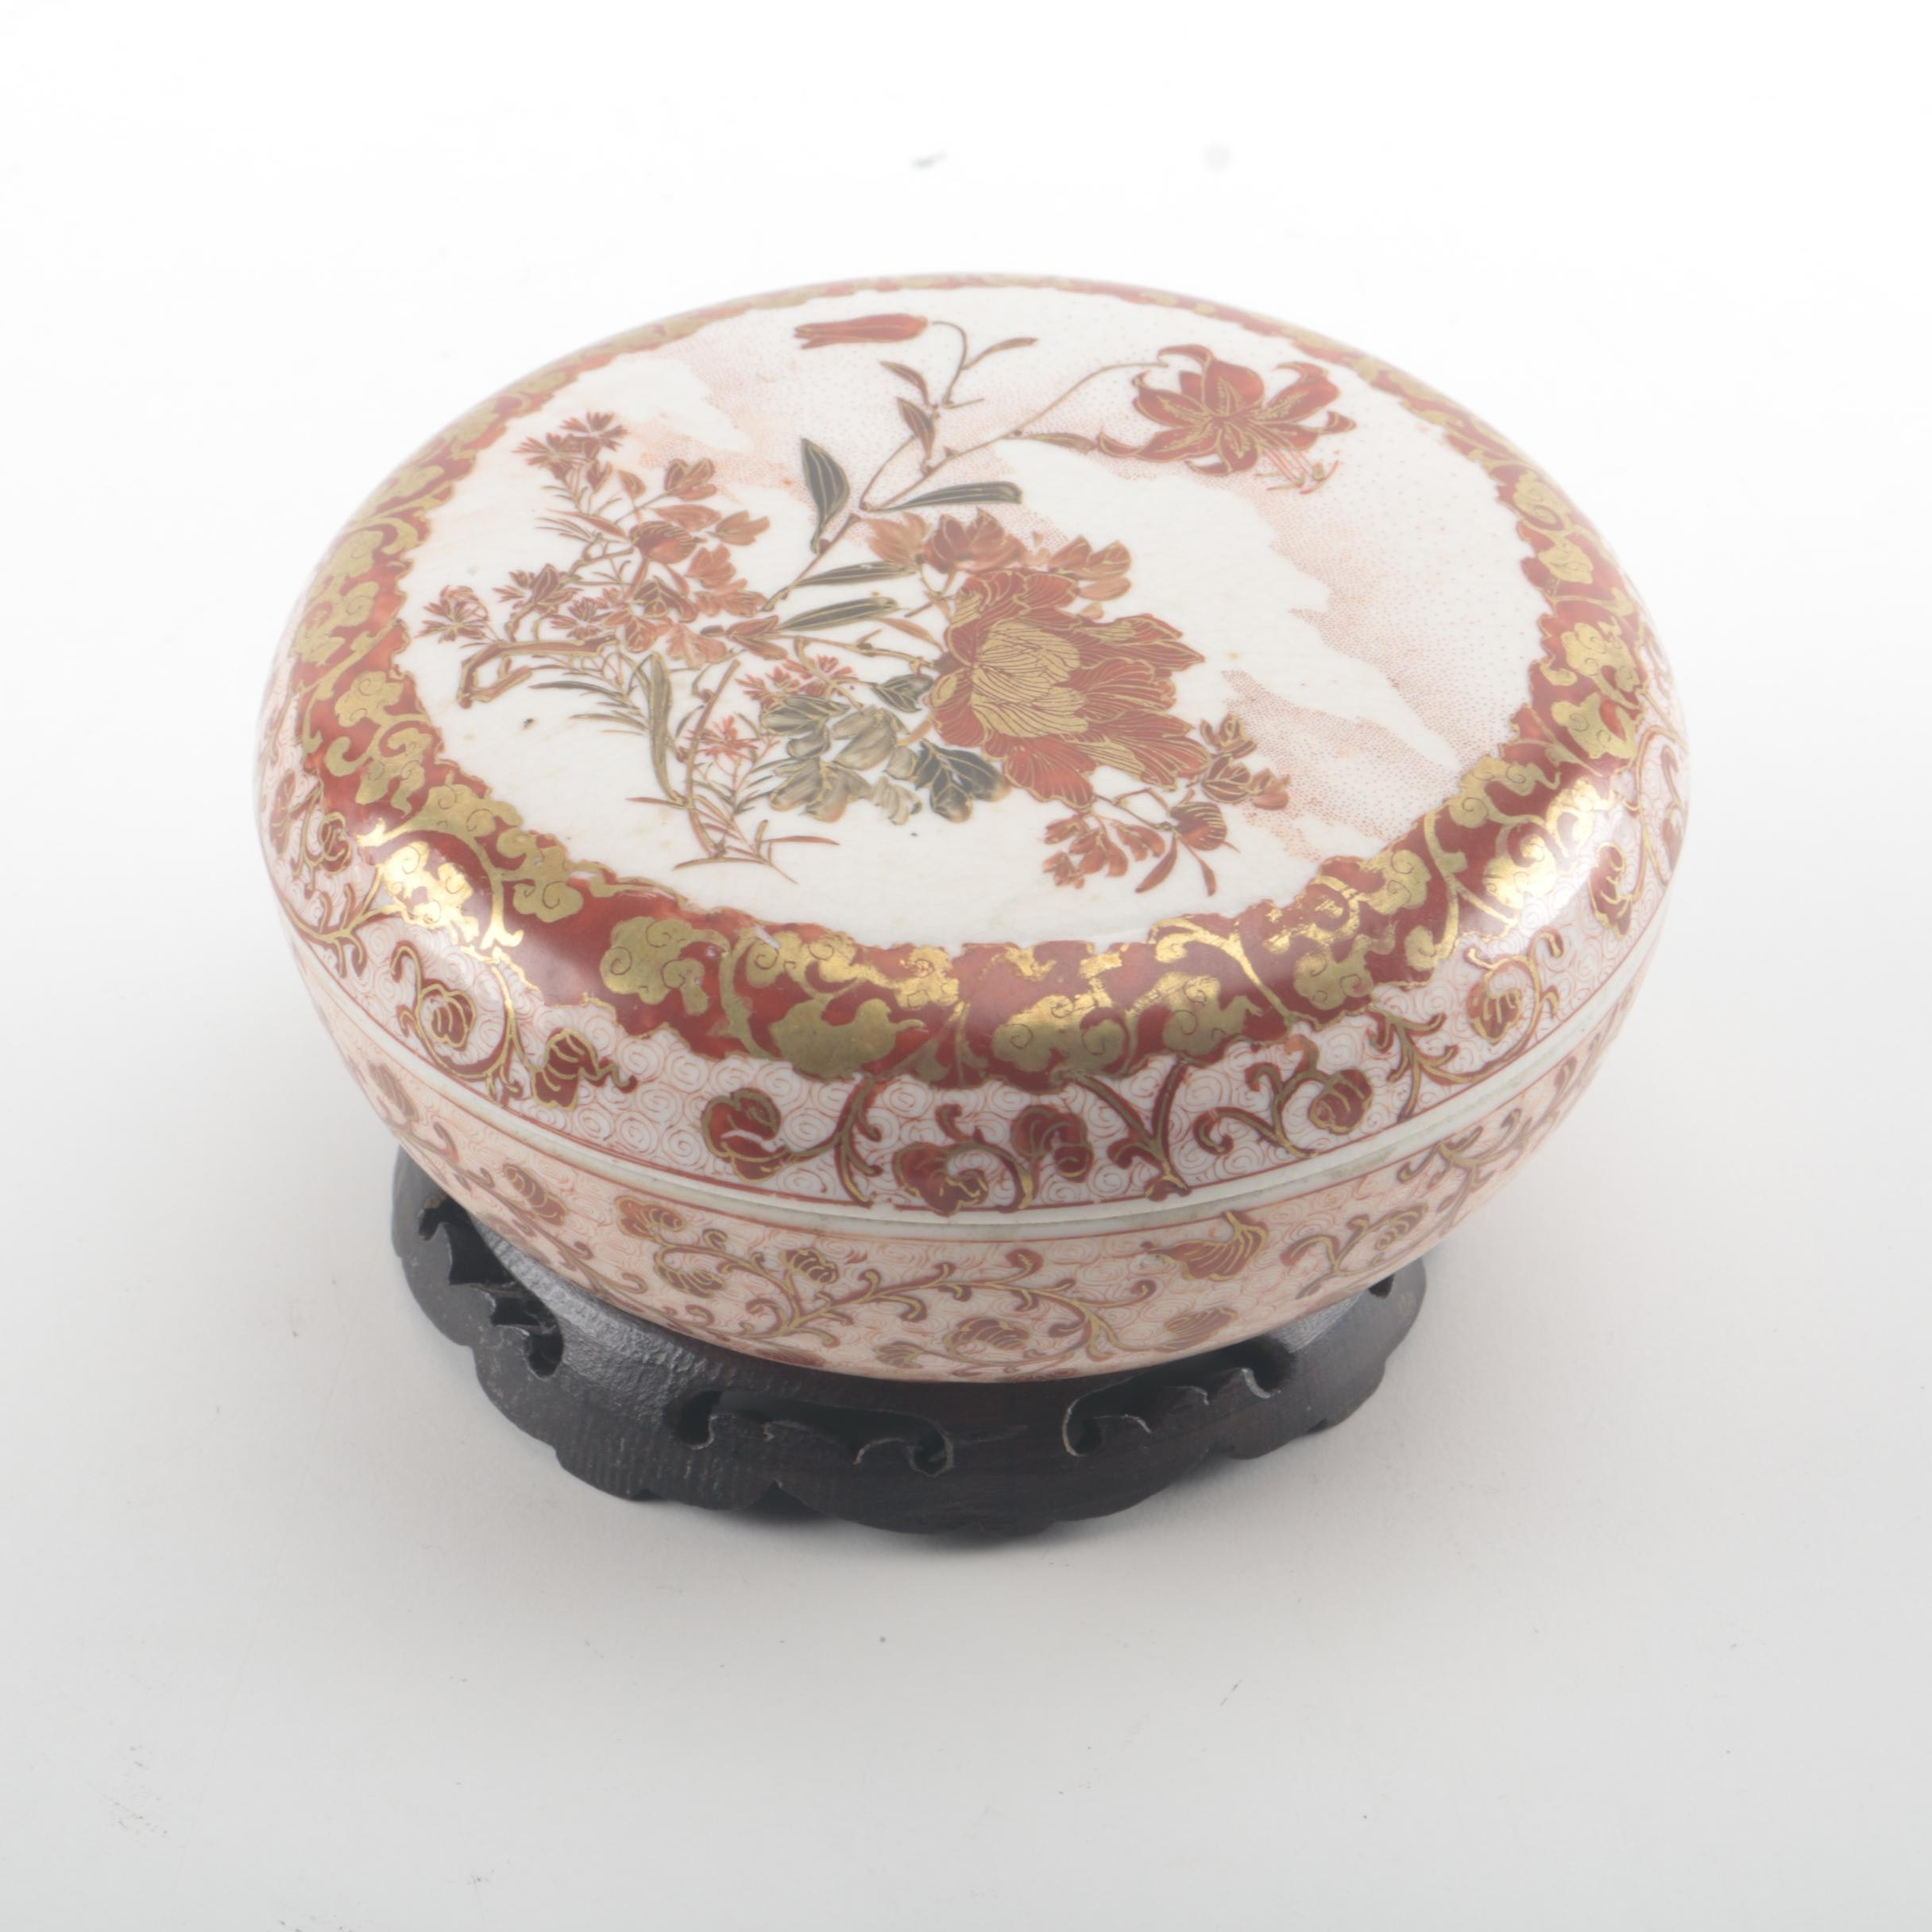 Japanese Kutani Porcelain Trinket Box